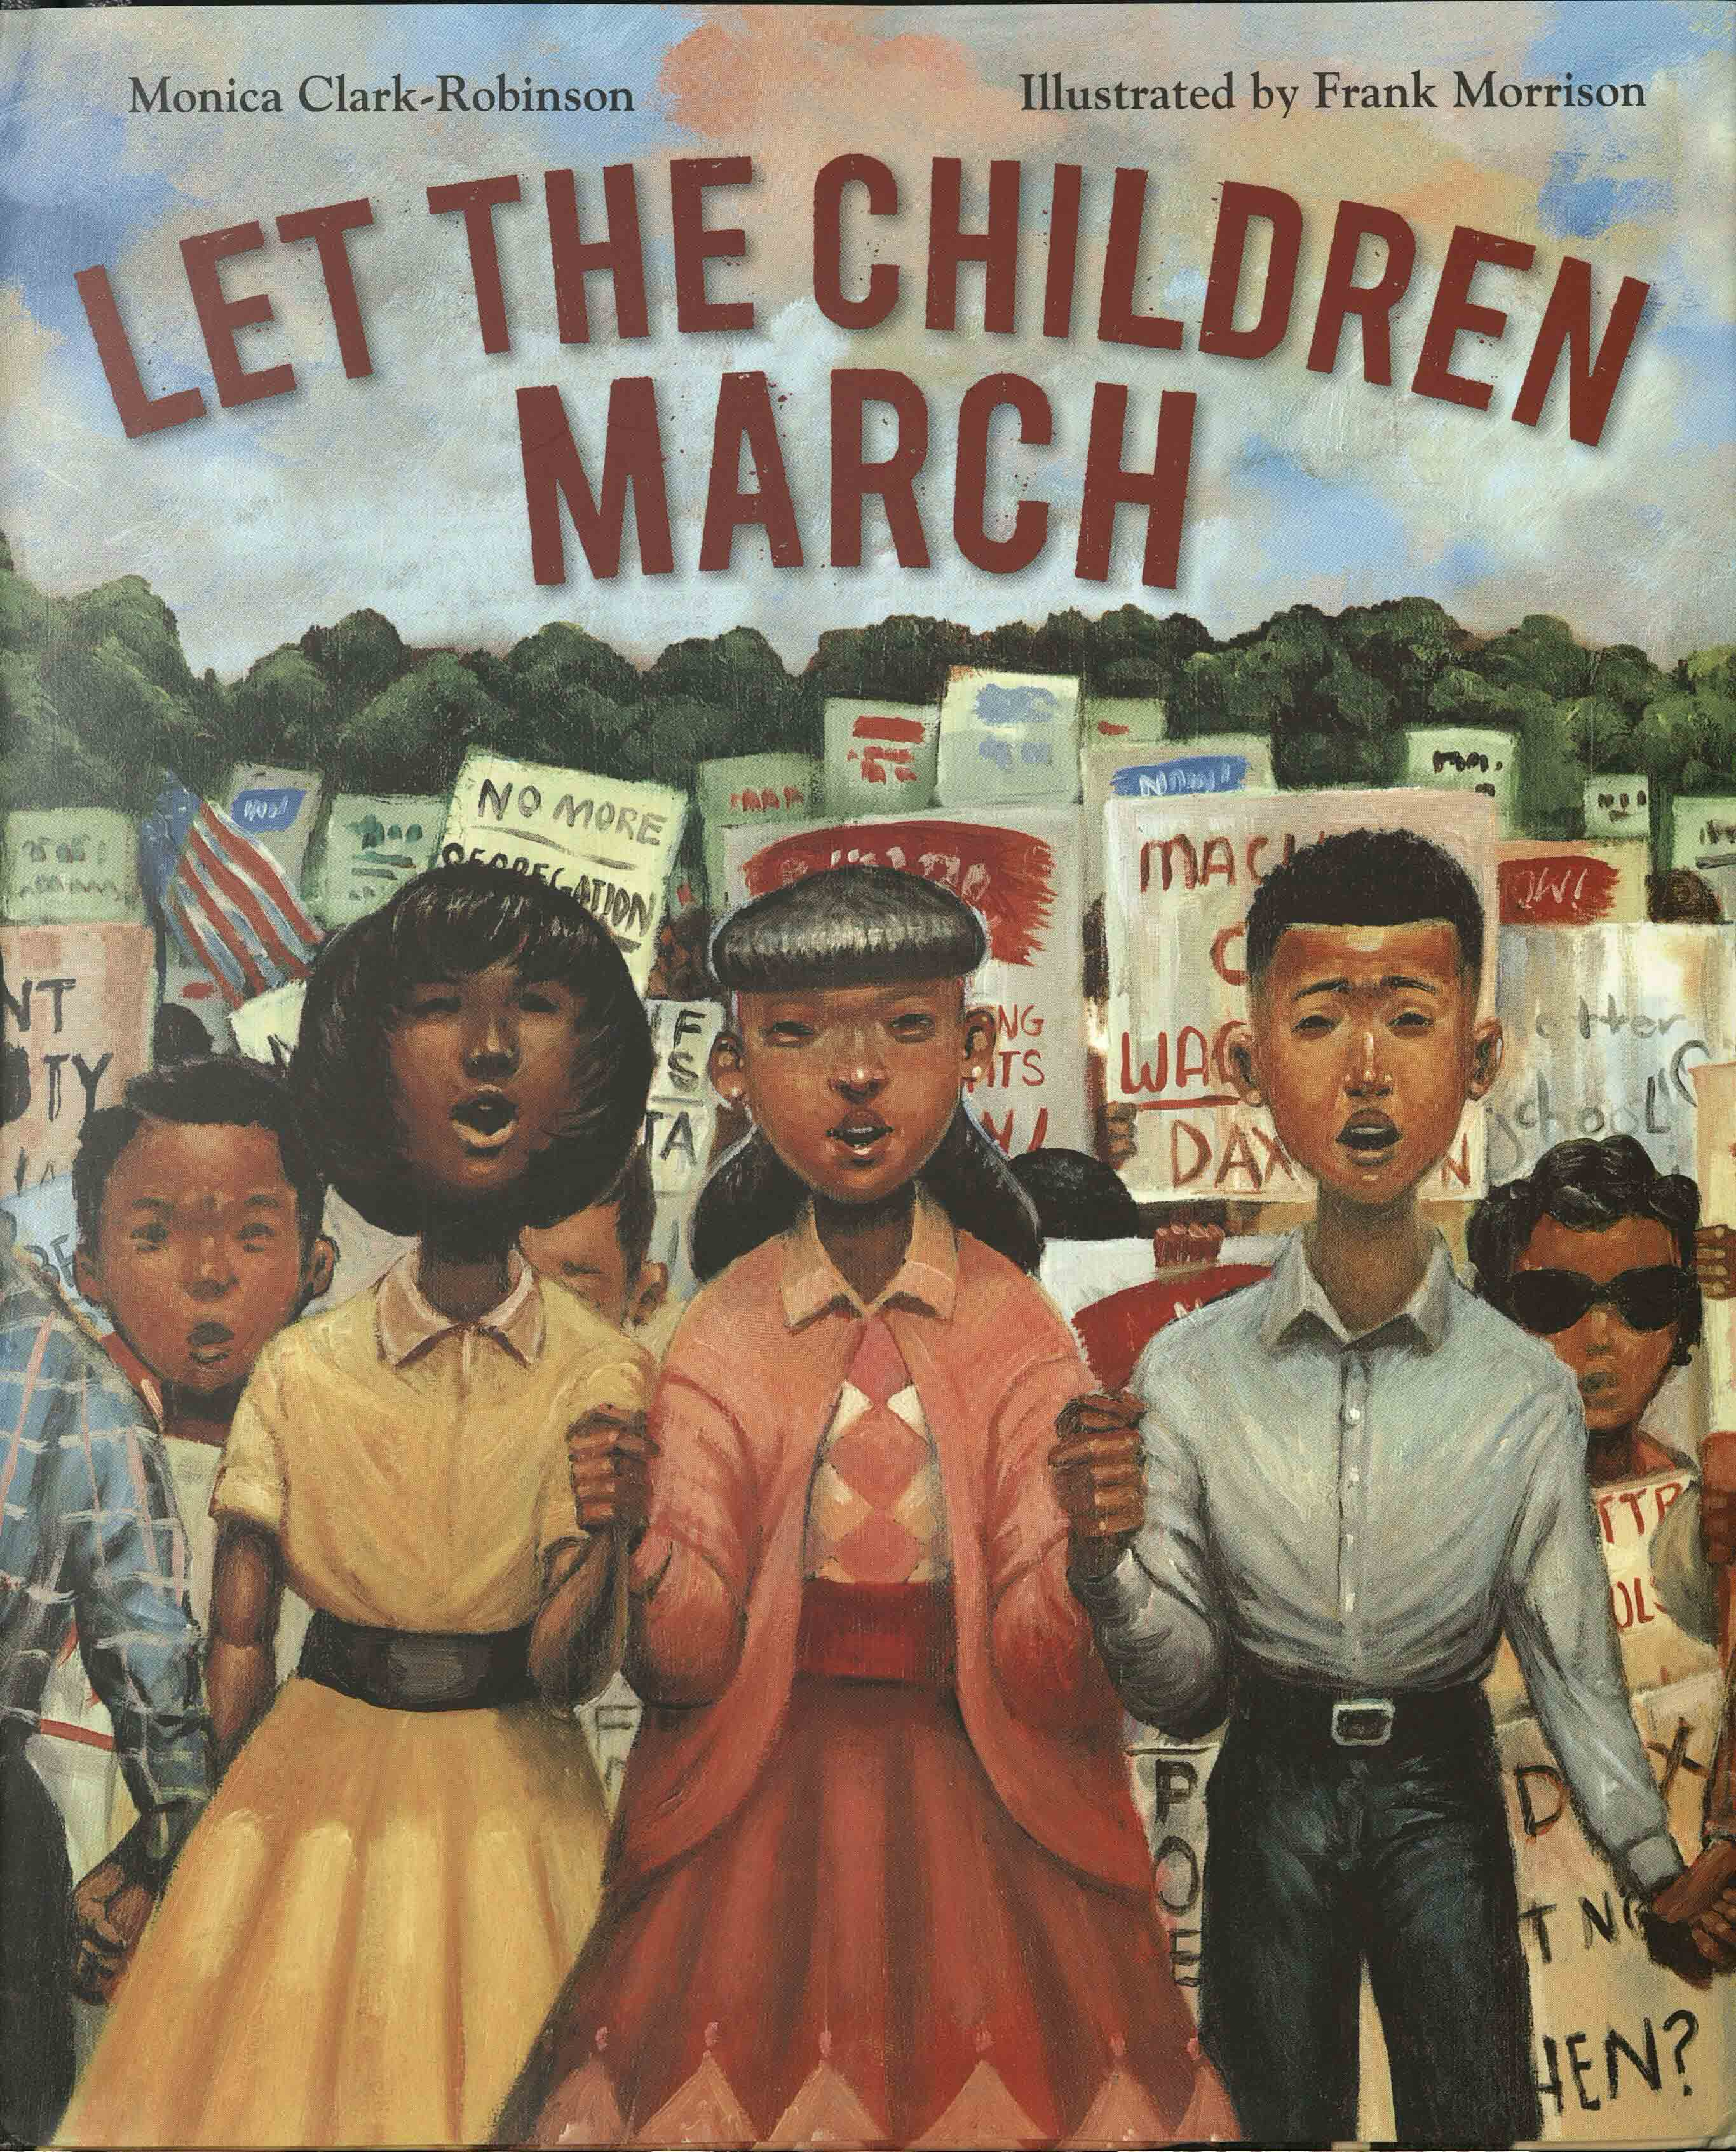 Cover of Let the Children March, by Monica Clark-Robinson